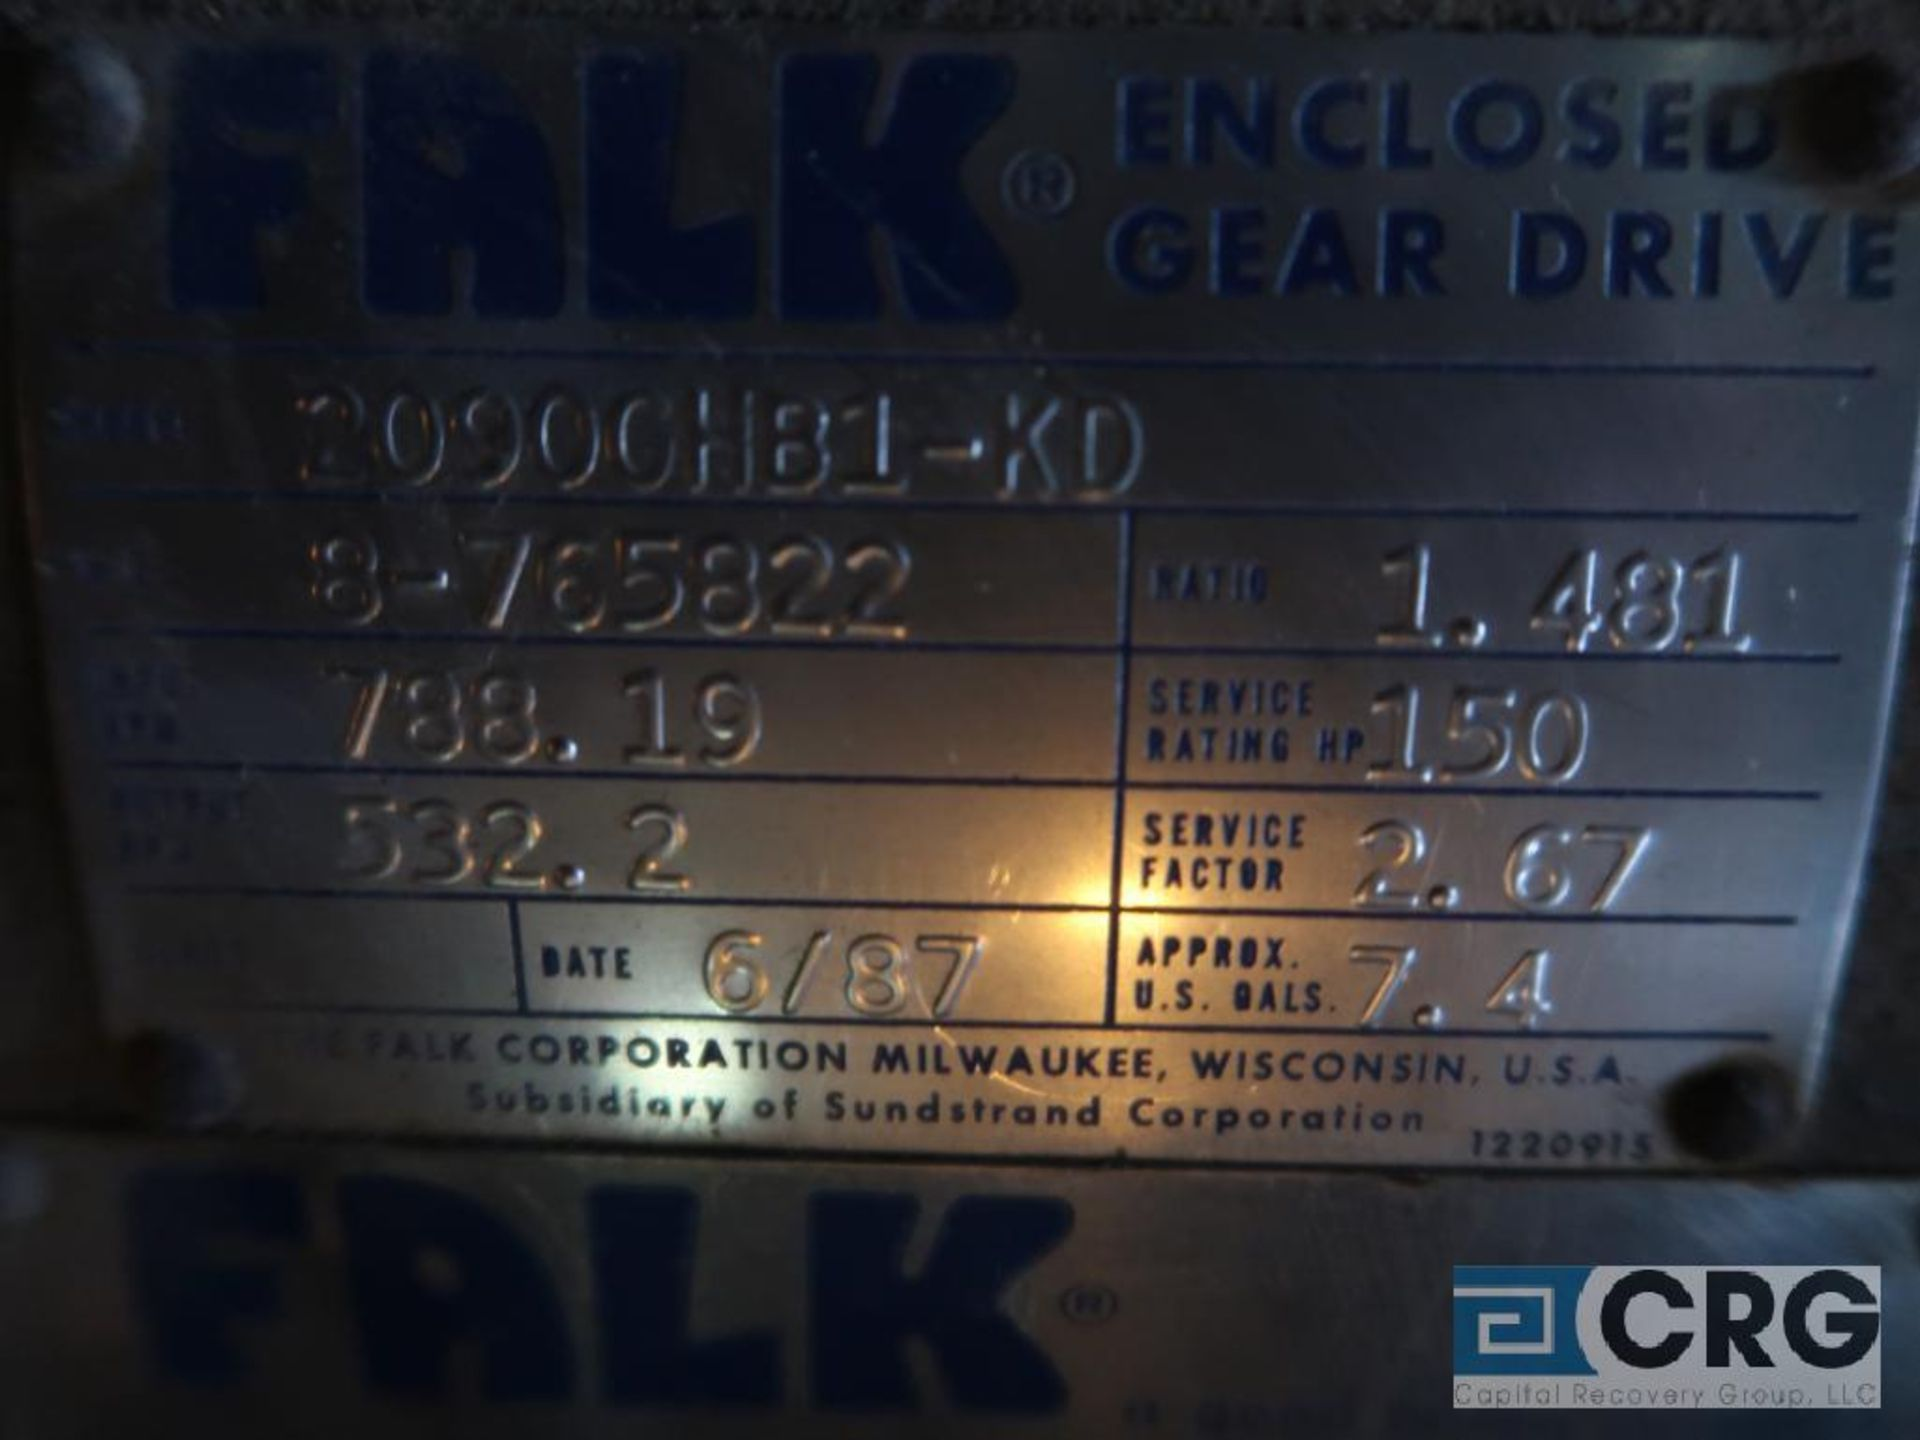 Falk 20906 GHB1 KD gear drive, ratio-1.481, input RPM 788.19, output RPM 532.2, service rate HP. - Image 2 of 2